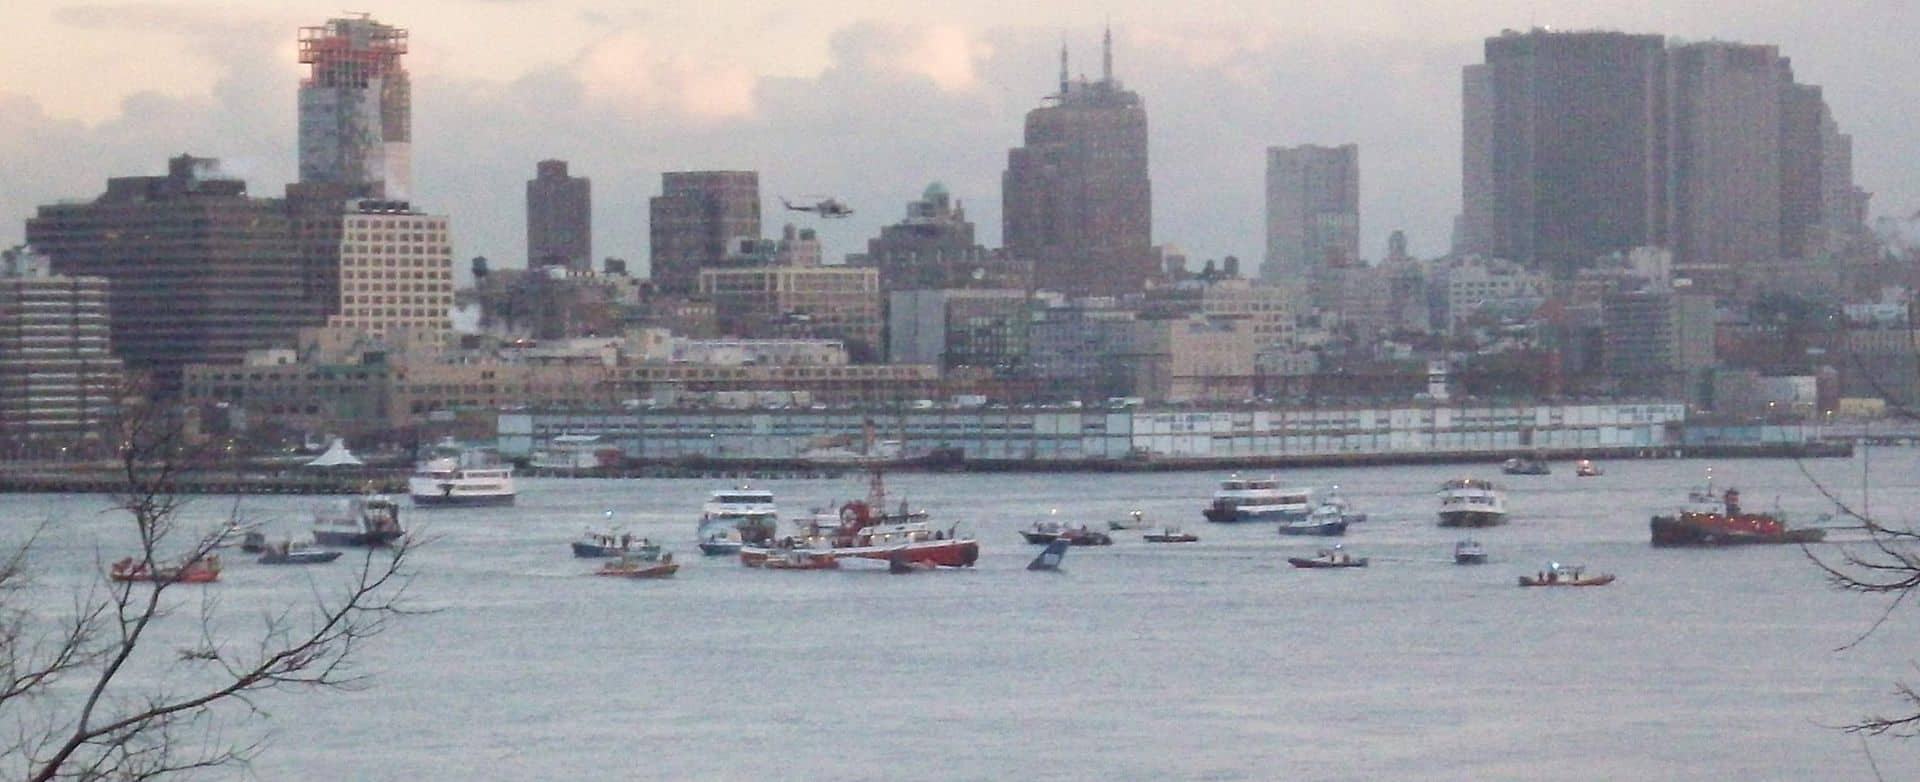 Boats surround the sinking US Airways Flight 1549 on the Hudson River, 2009 facts, historical events facts